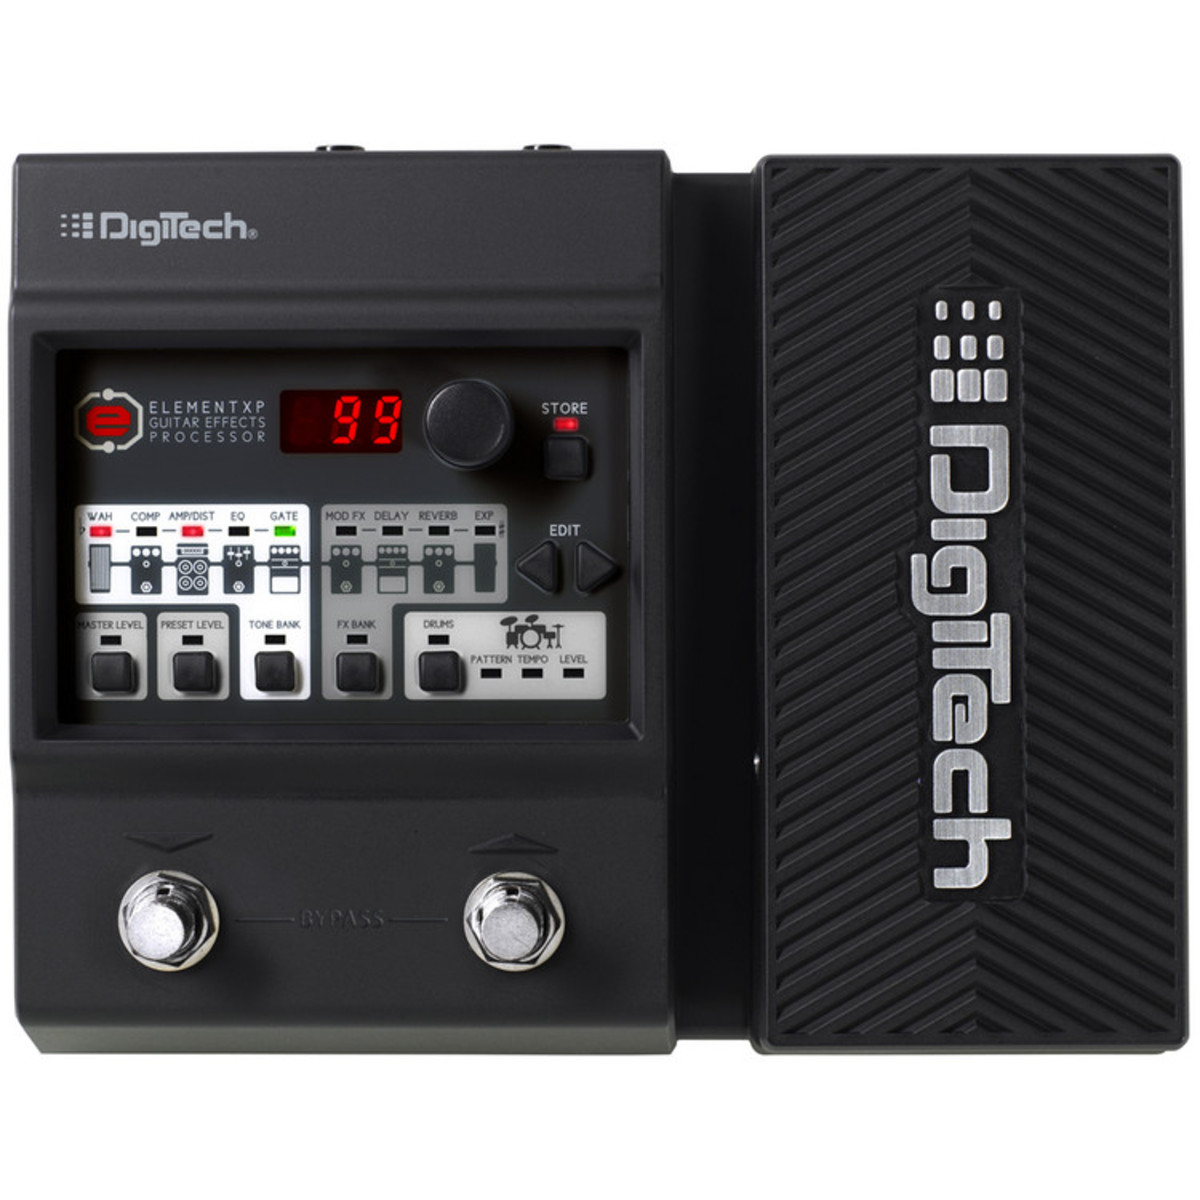 digitech element xp guitar amp modelling and multi effects pedal box opened at. Black Bedroom Furniture Sets. Home Design Ideas